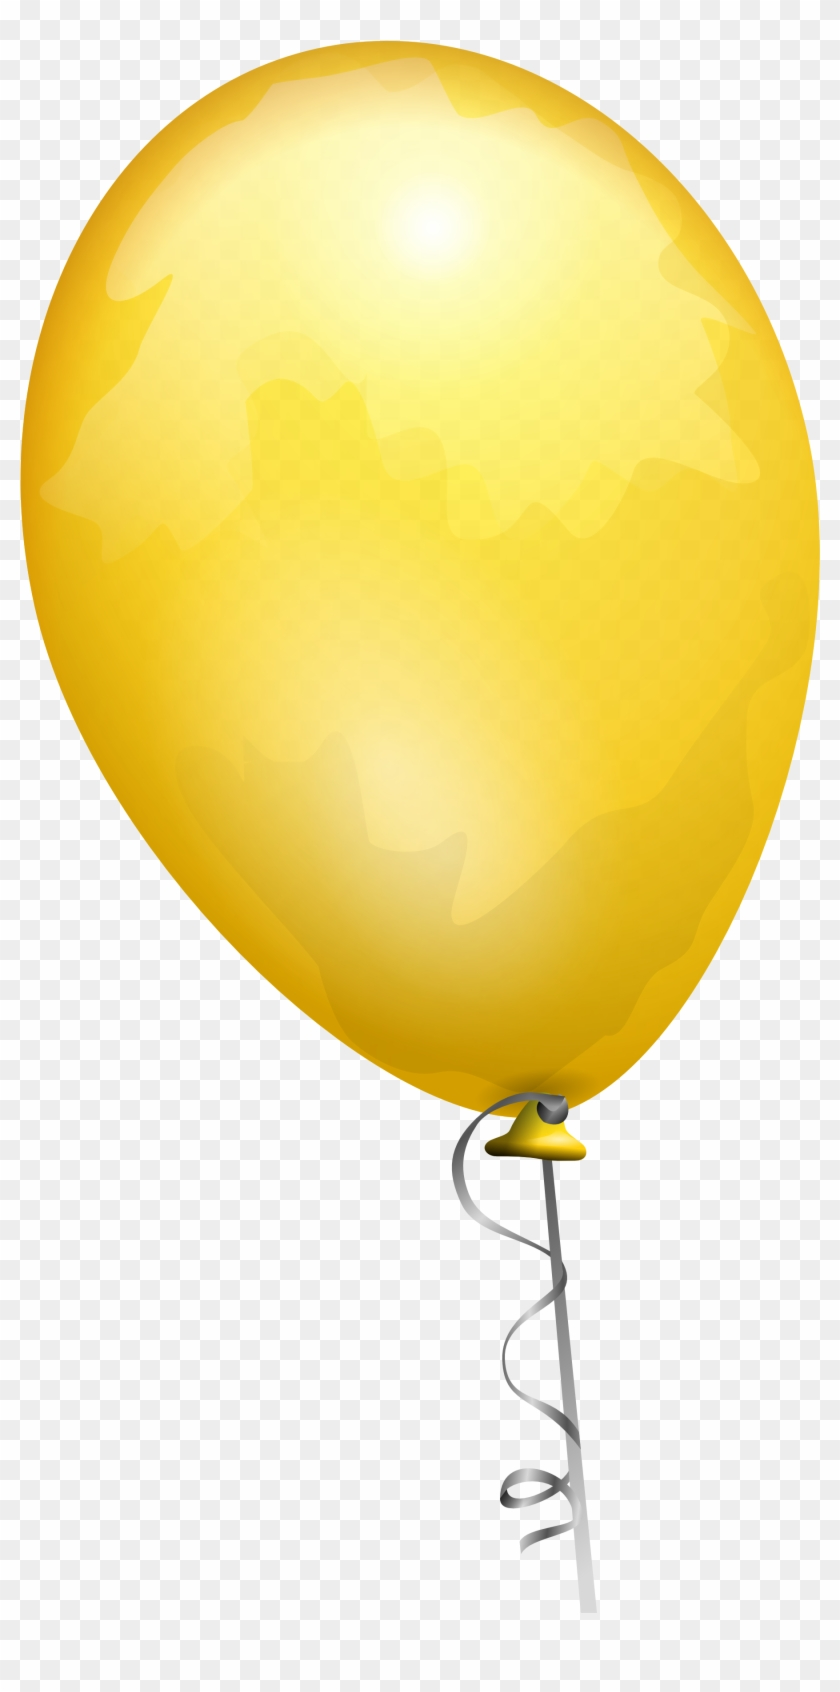 Balloon Png579 - Yellow Balloon Transparent Background #351295